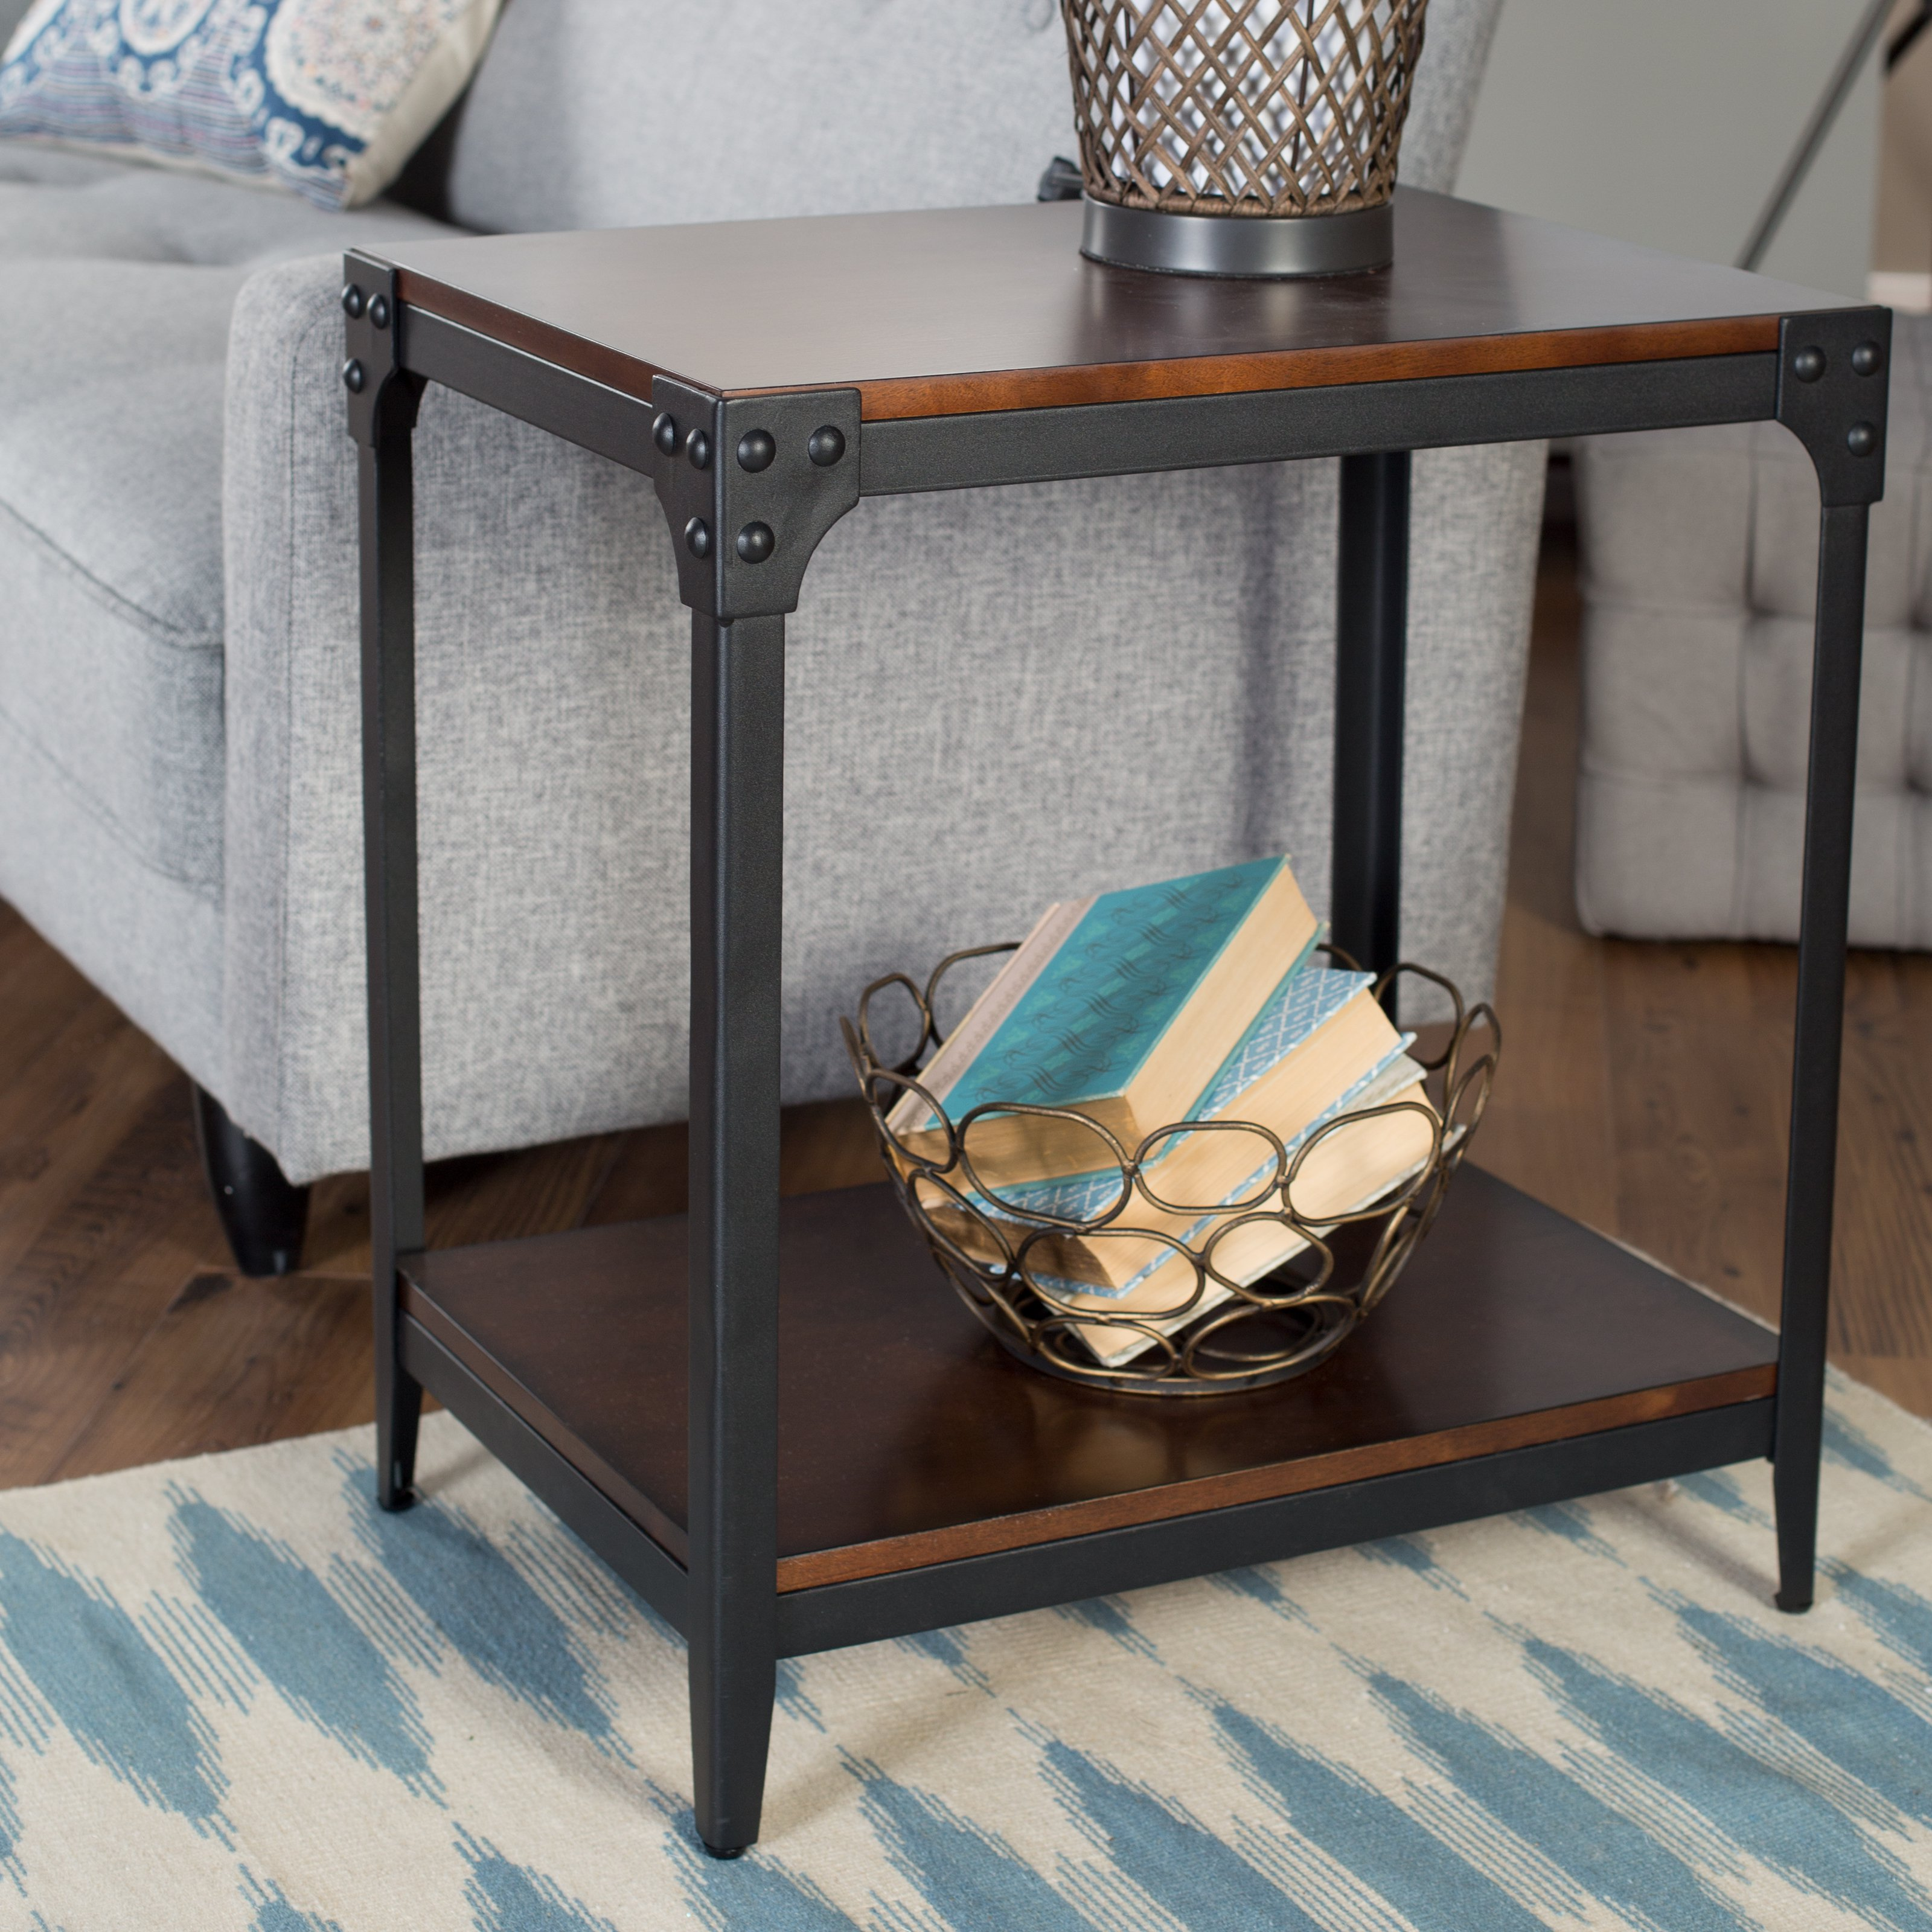 Belham Living Trenton Industrial End Table - Espresso